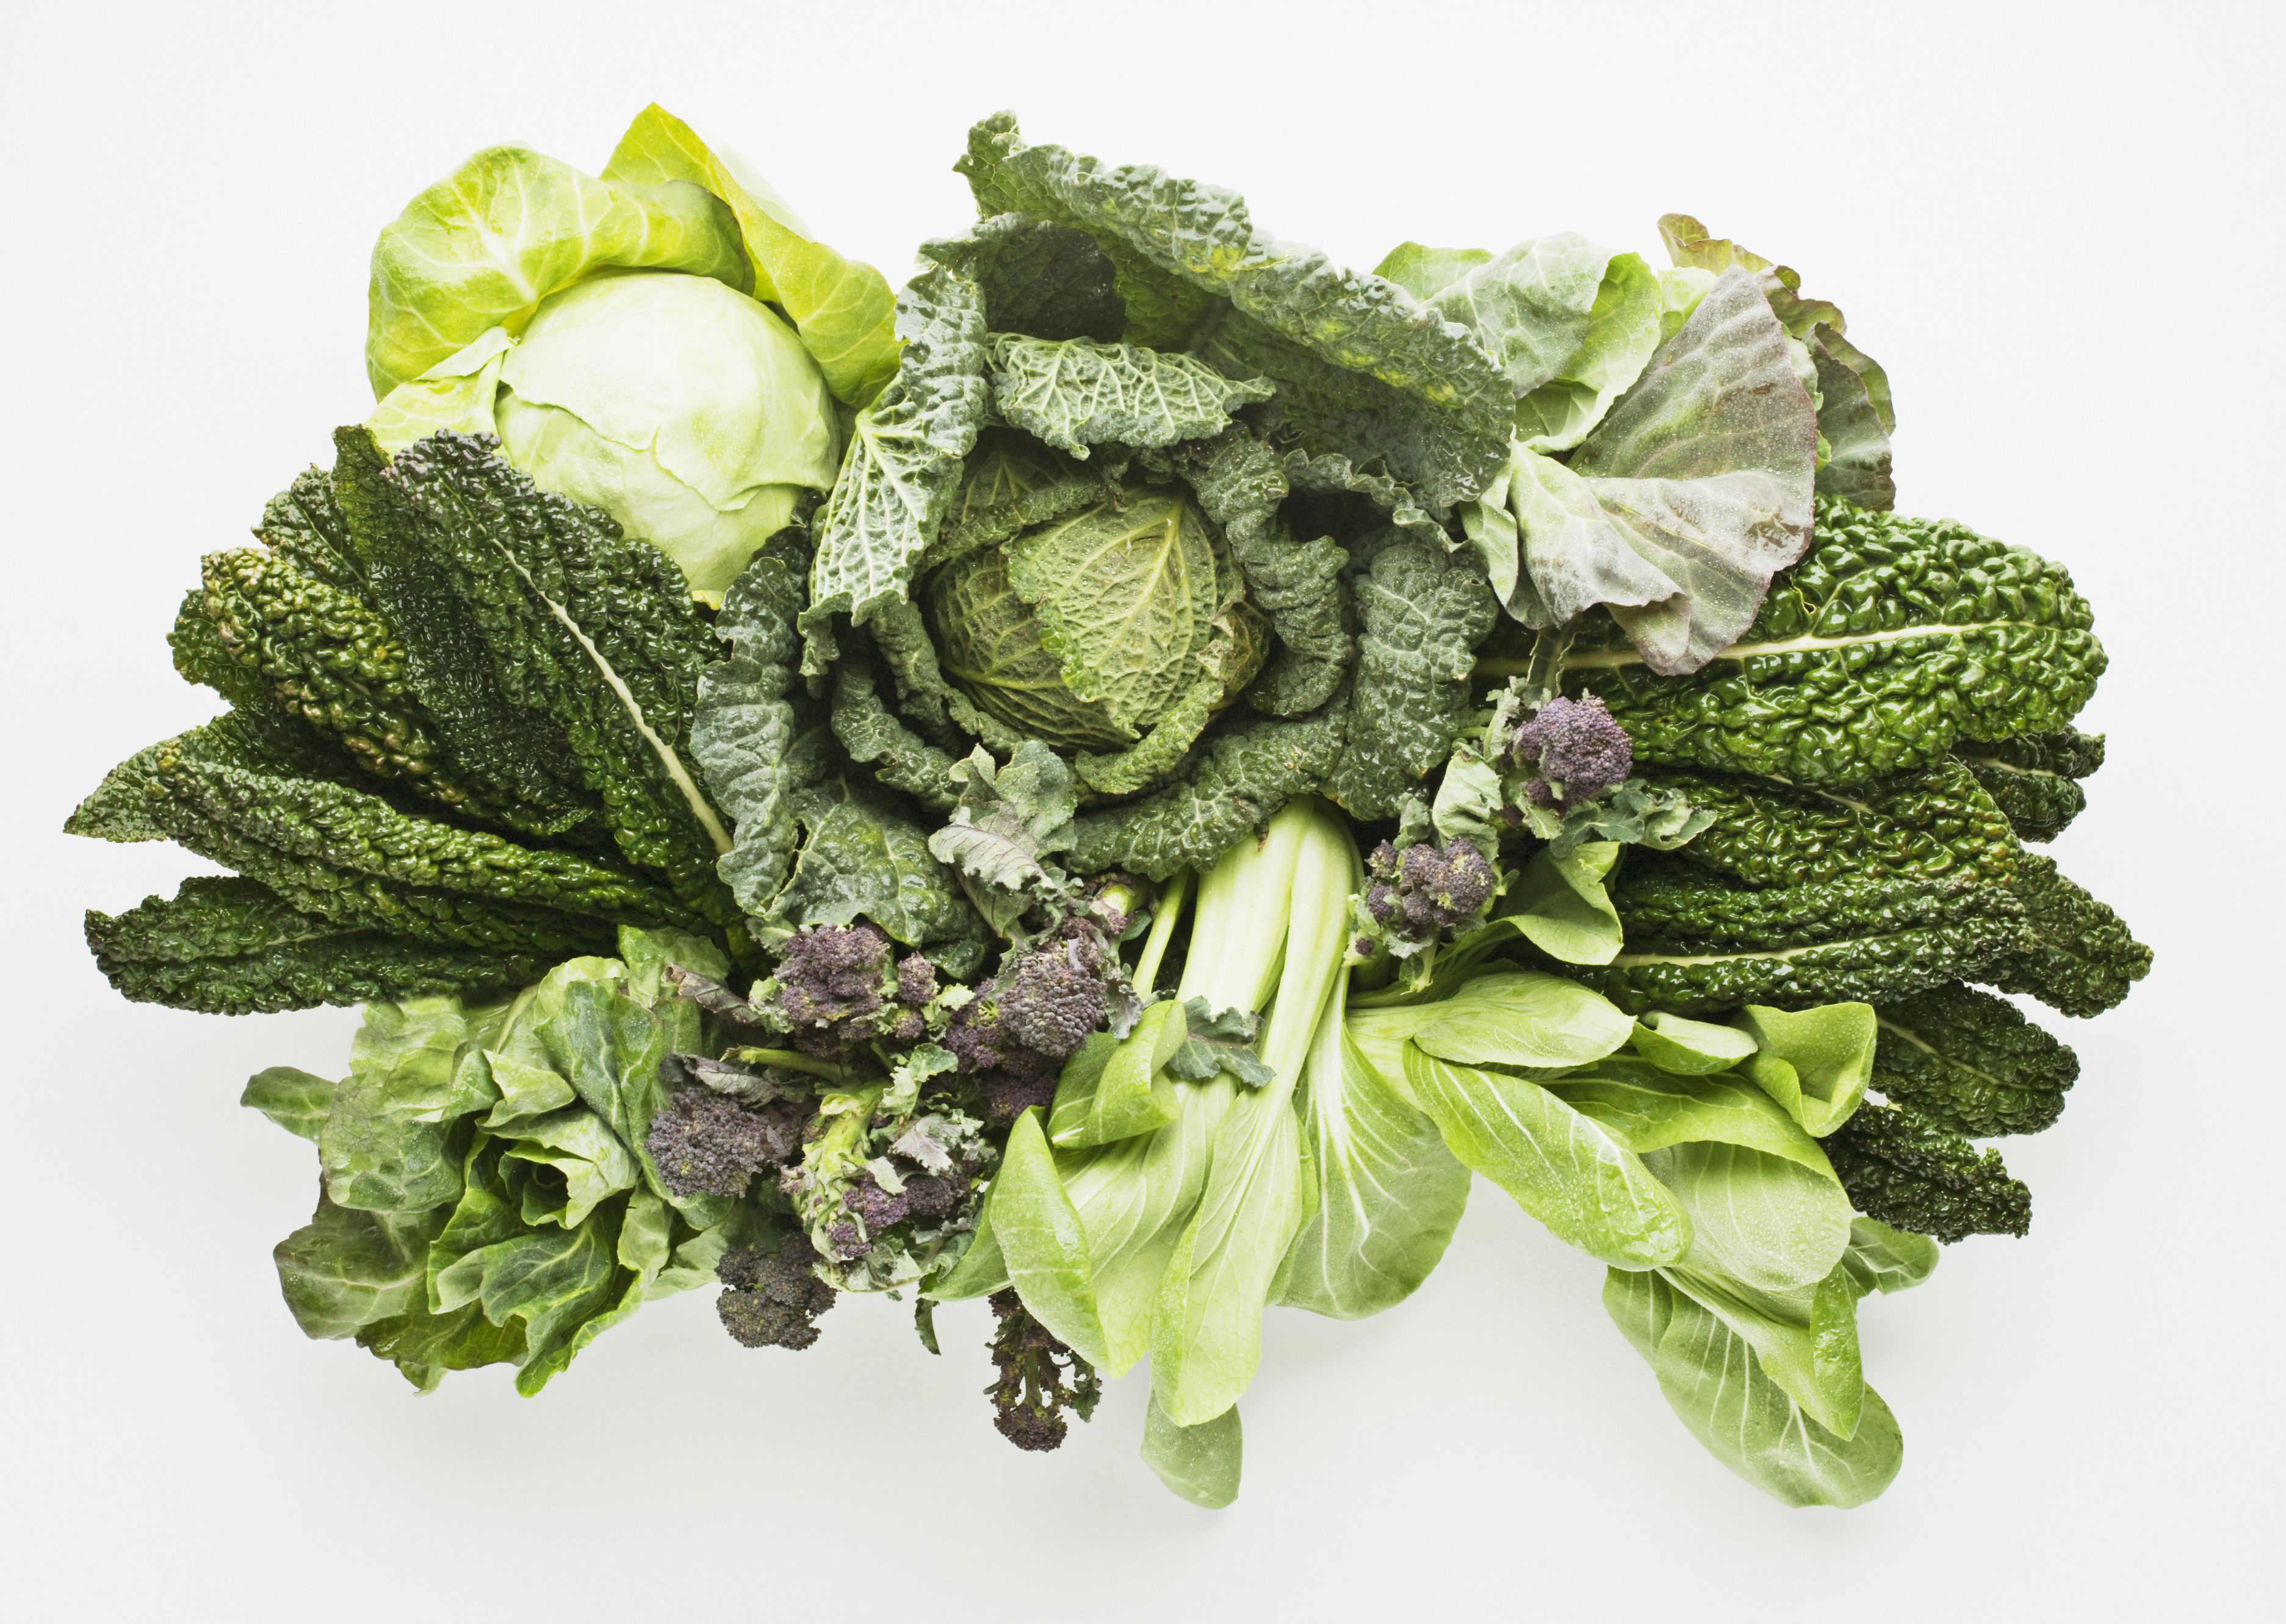 Green leafy vegetables on a table